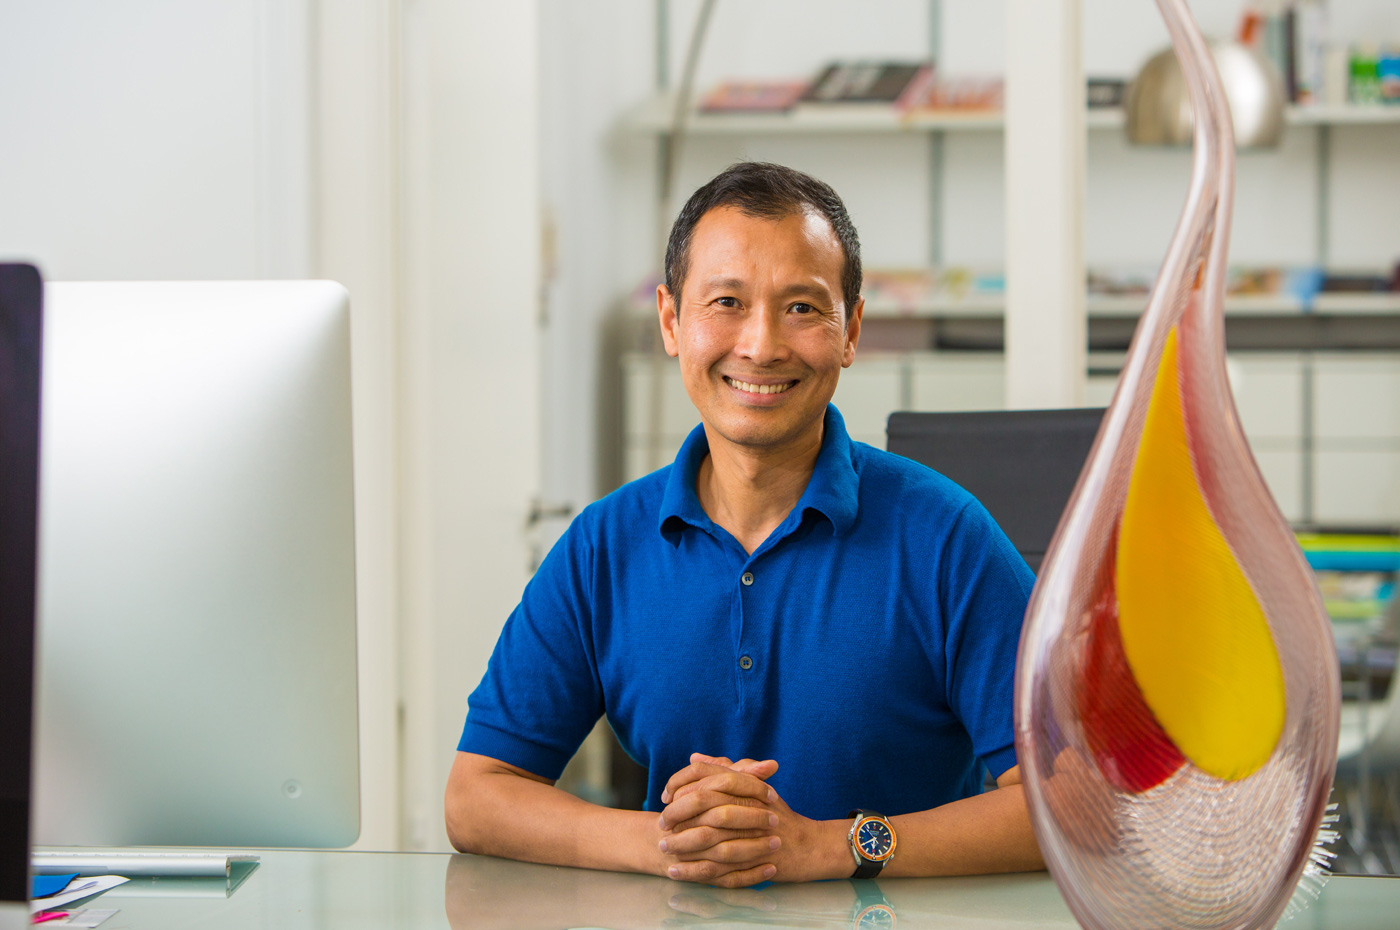 Lim Khaw, Design Lead